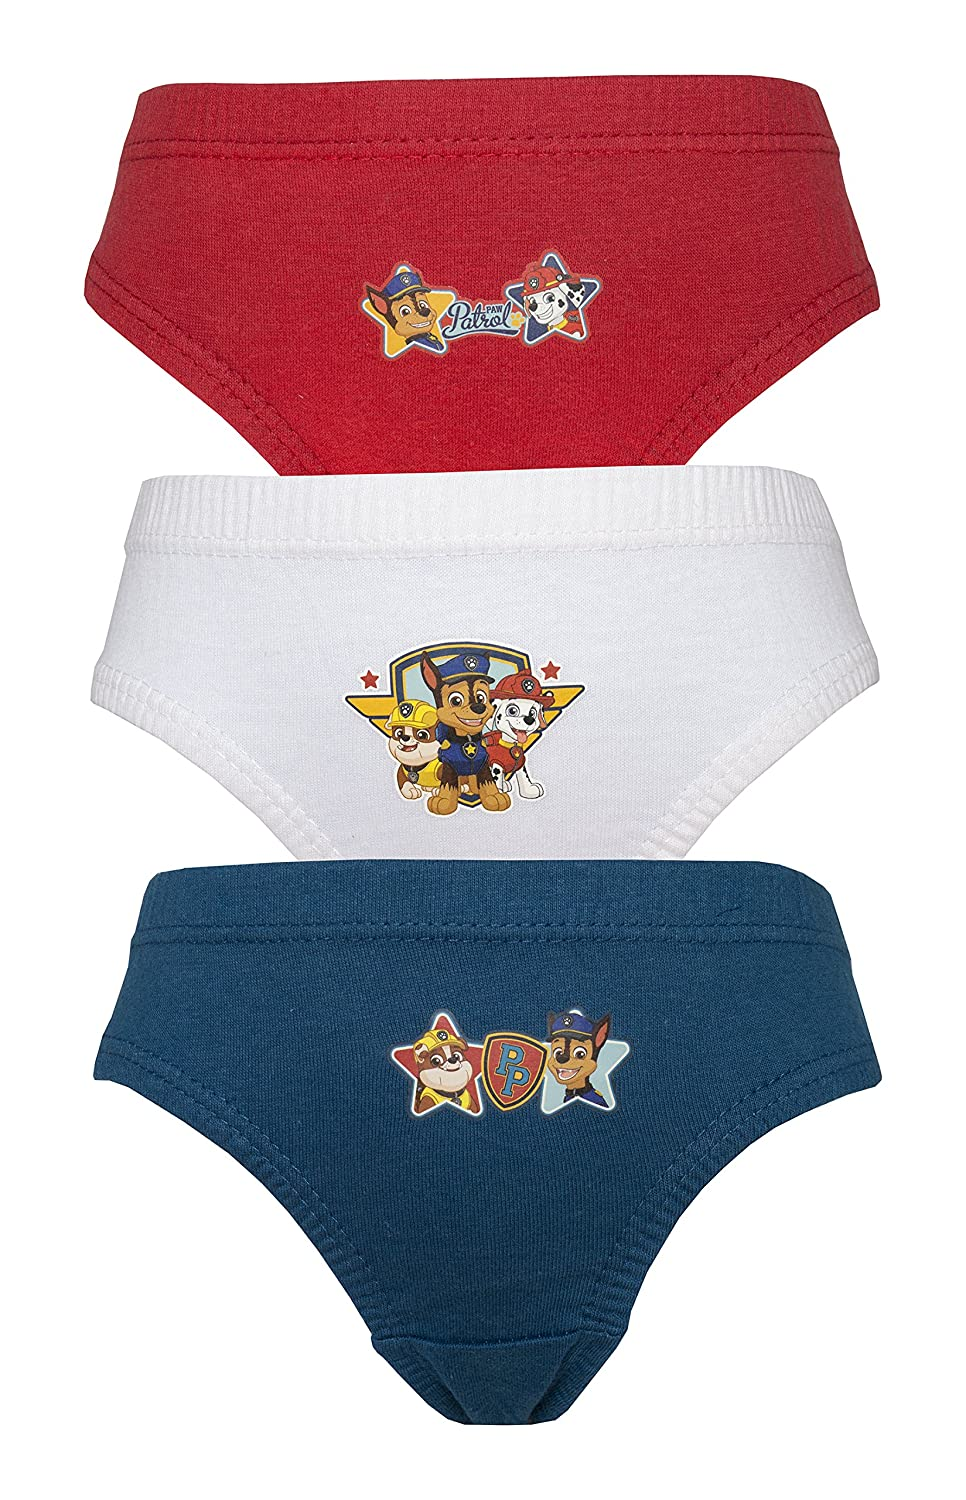 3 Pack Nickleodeon Boys Paw Patrol Pants/Briefs Various Designs 18 Months - 5